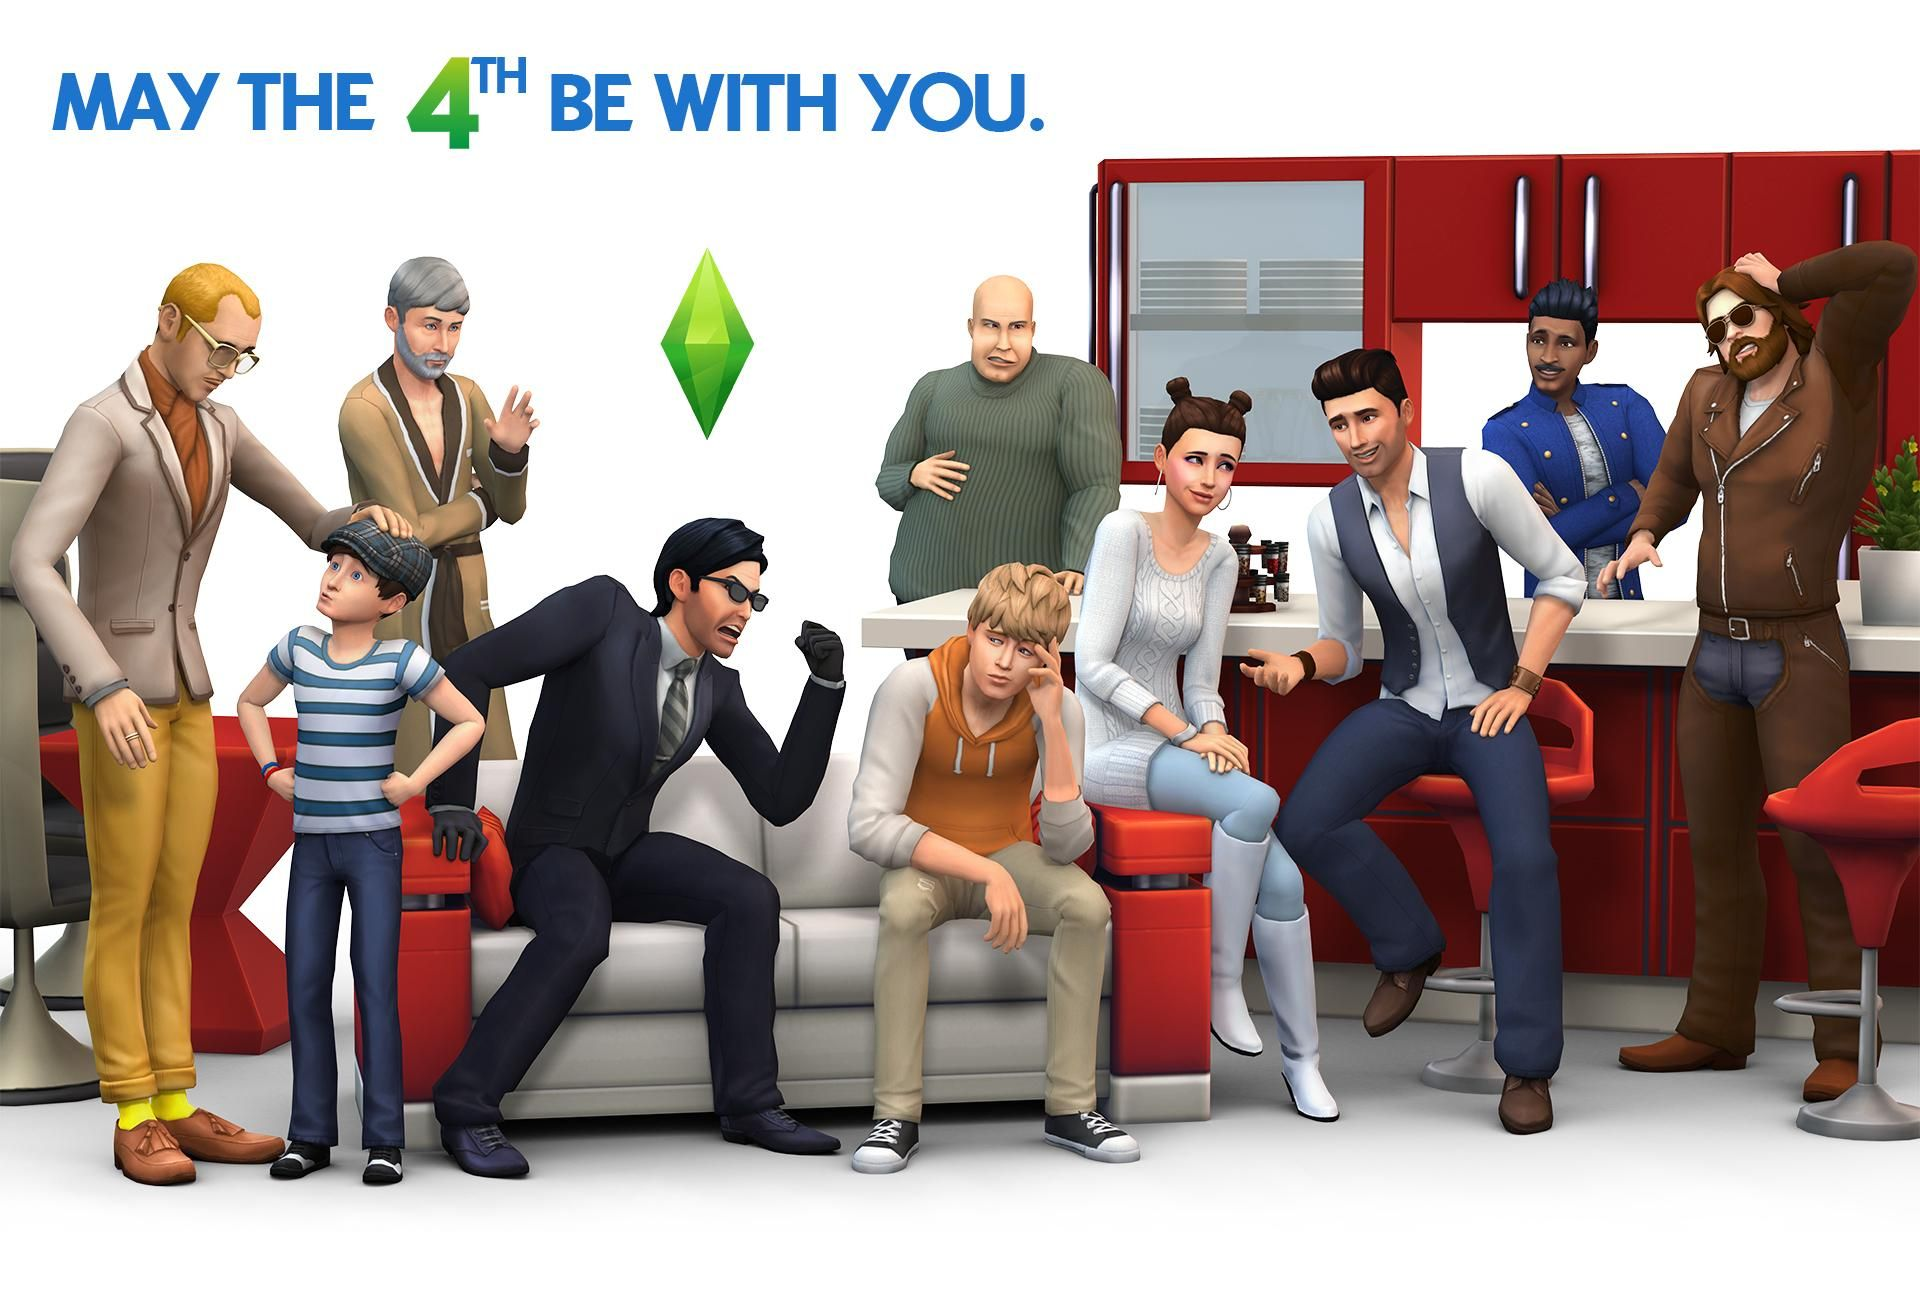 Sims 4 wallpaper (With images) Sims 4 characters, Sims